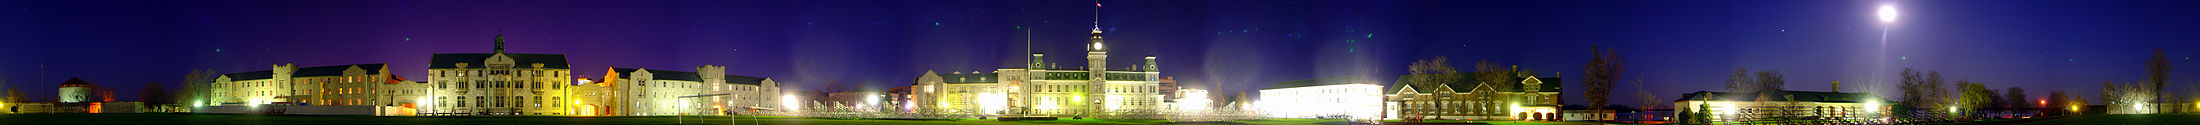 A 260 degree photo of the Royal Military College of Canada in  Kingston, Ontario, on the 4th of May 2007.  Seen is a green landscape during the night, featuring  buildings made of white stone and red brick. The night sky is  dark blue and purple, with the moon shining bright on the right side of the image.  Photo credit: Martin St-Amant (User:S23678)